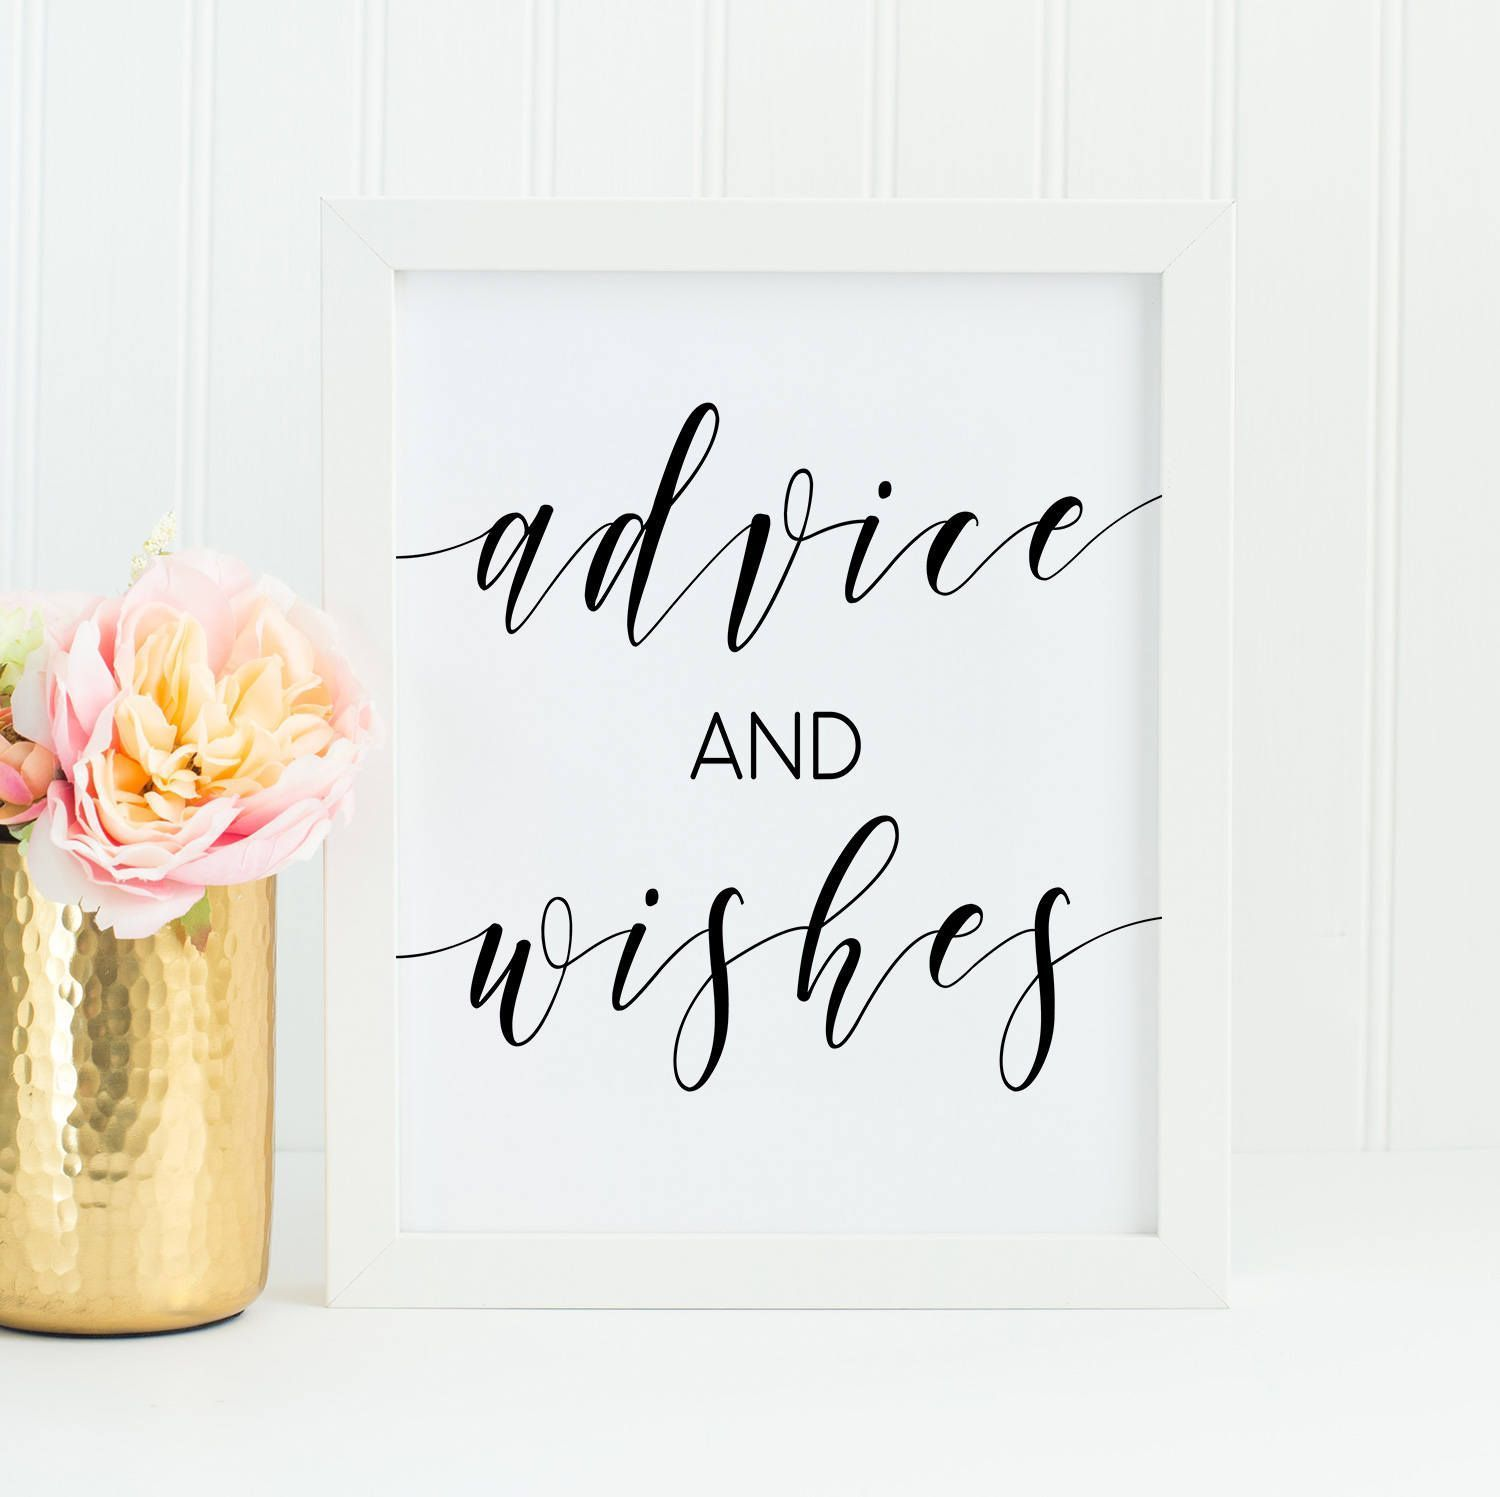 advice and wishes sign printable well wishes sign bridal shower advice baby shower wishes wedding guestobook sign modern10 by thepartybunch on